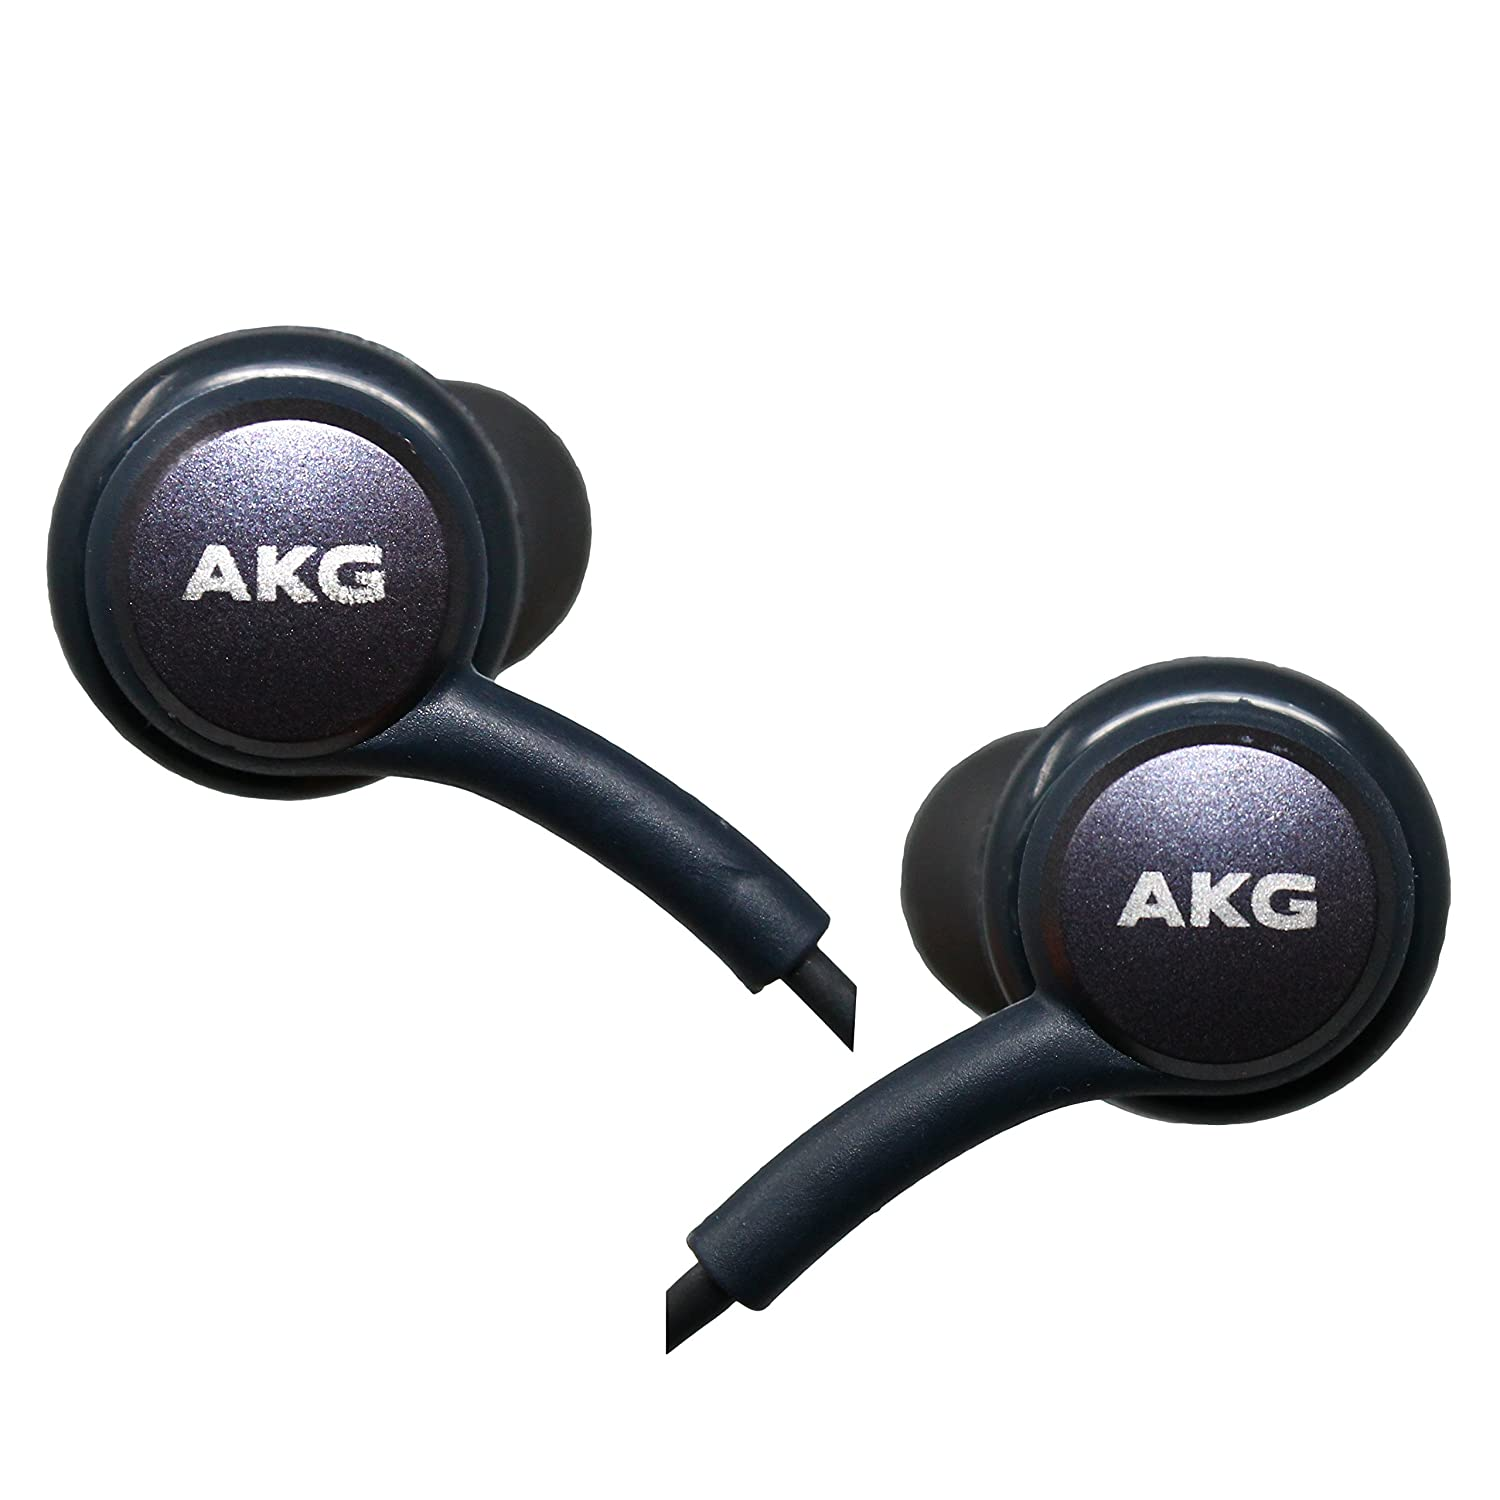 Samsung Akg Earphones Titanium Gray Eo Ig955 For Headset S8 Original Galaxy And Plus Compatible With Other Smartphone Devices 100 Oem New In